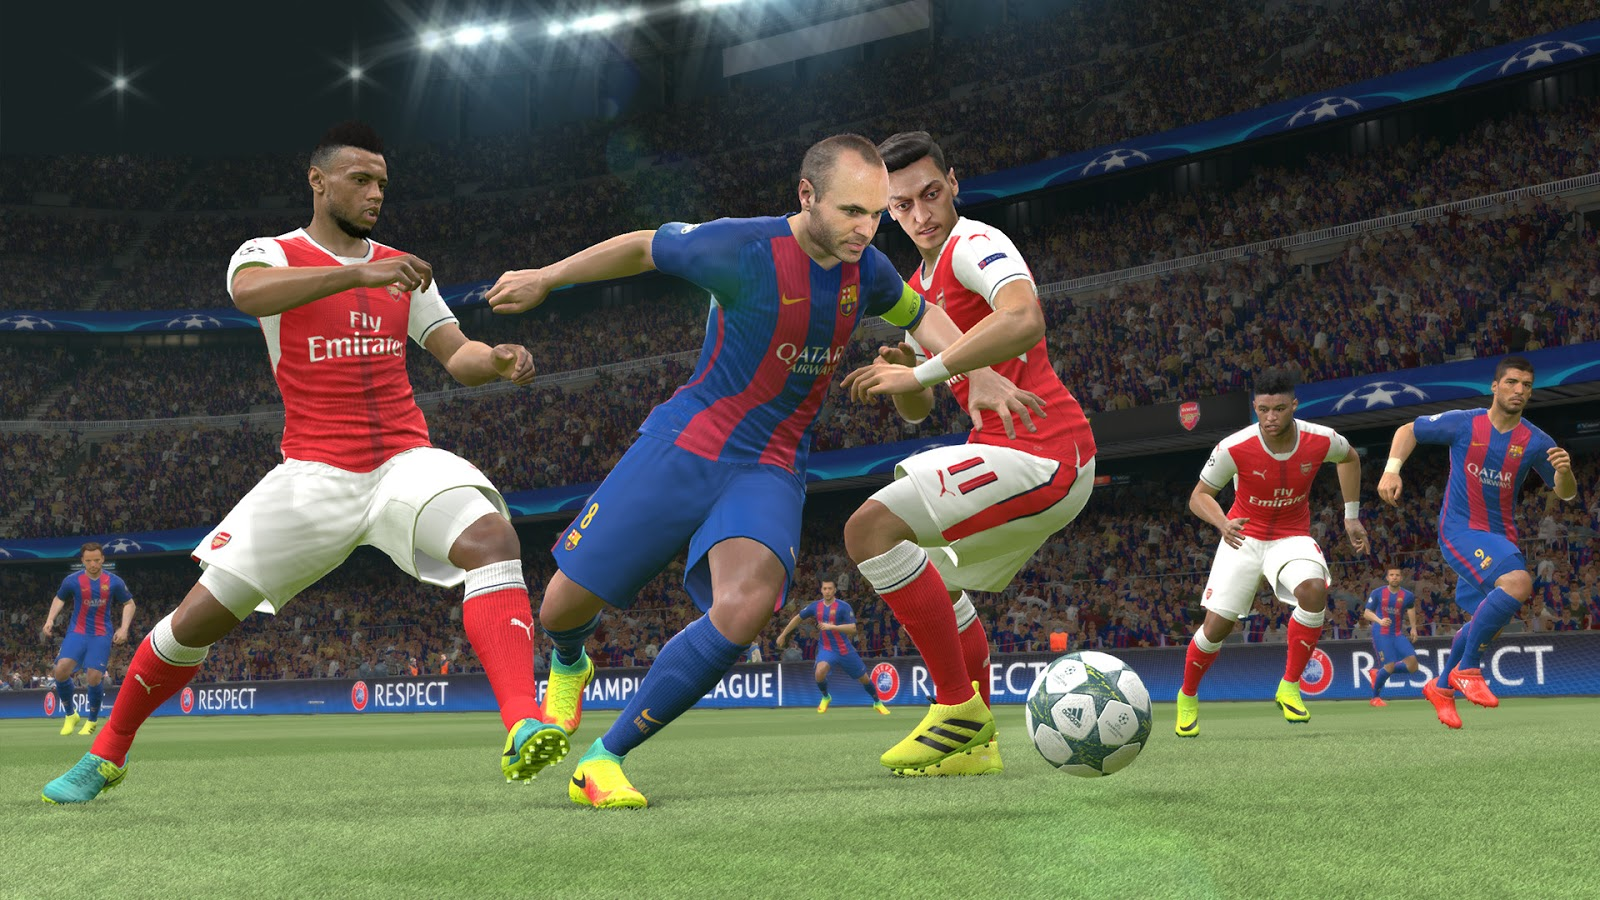 Pro Evolution Soccer 2017 - PC